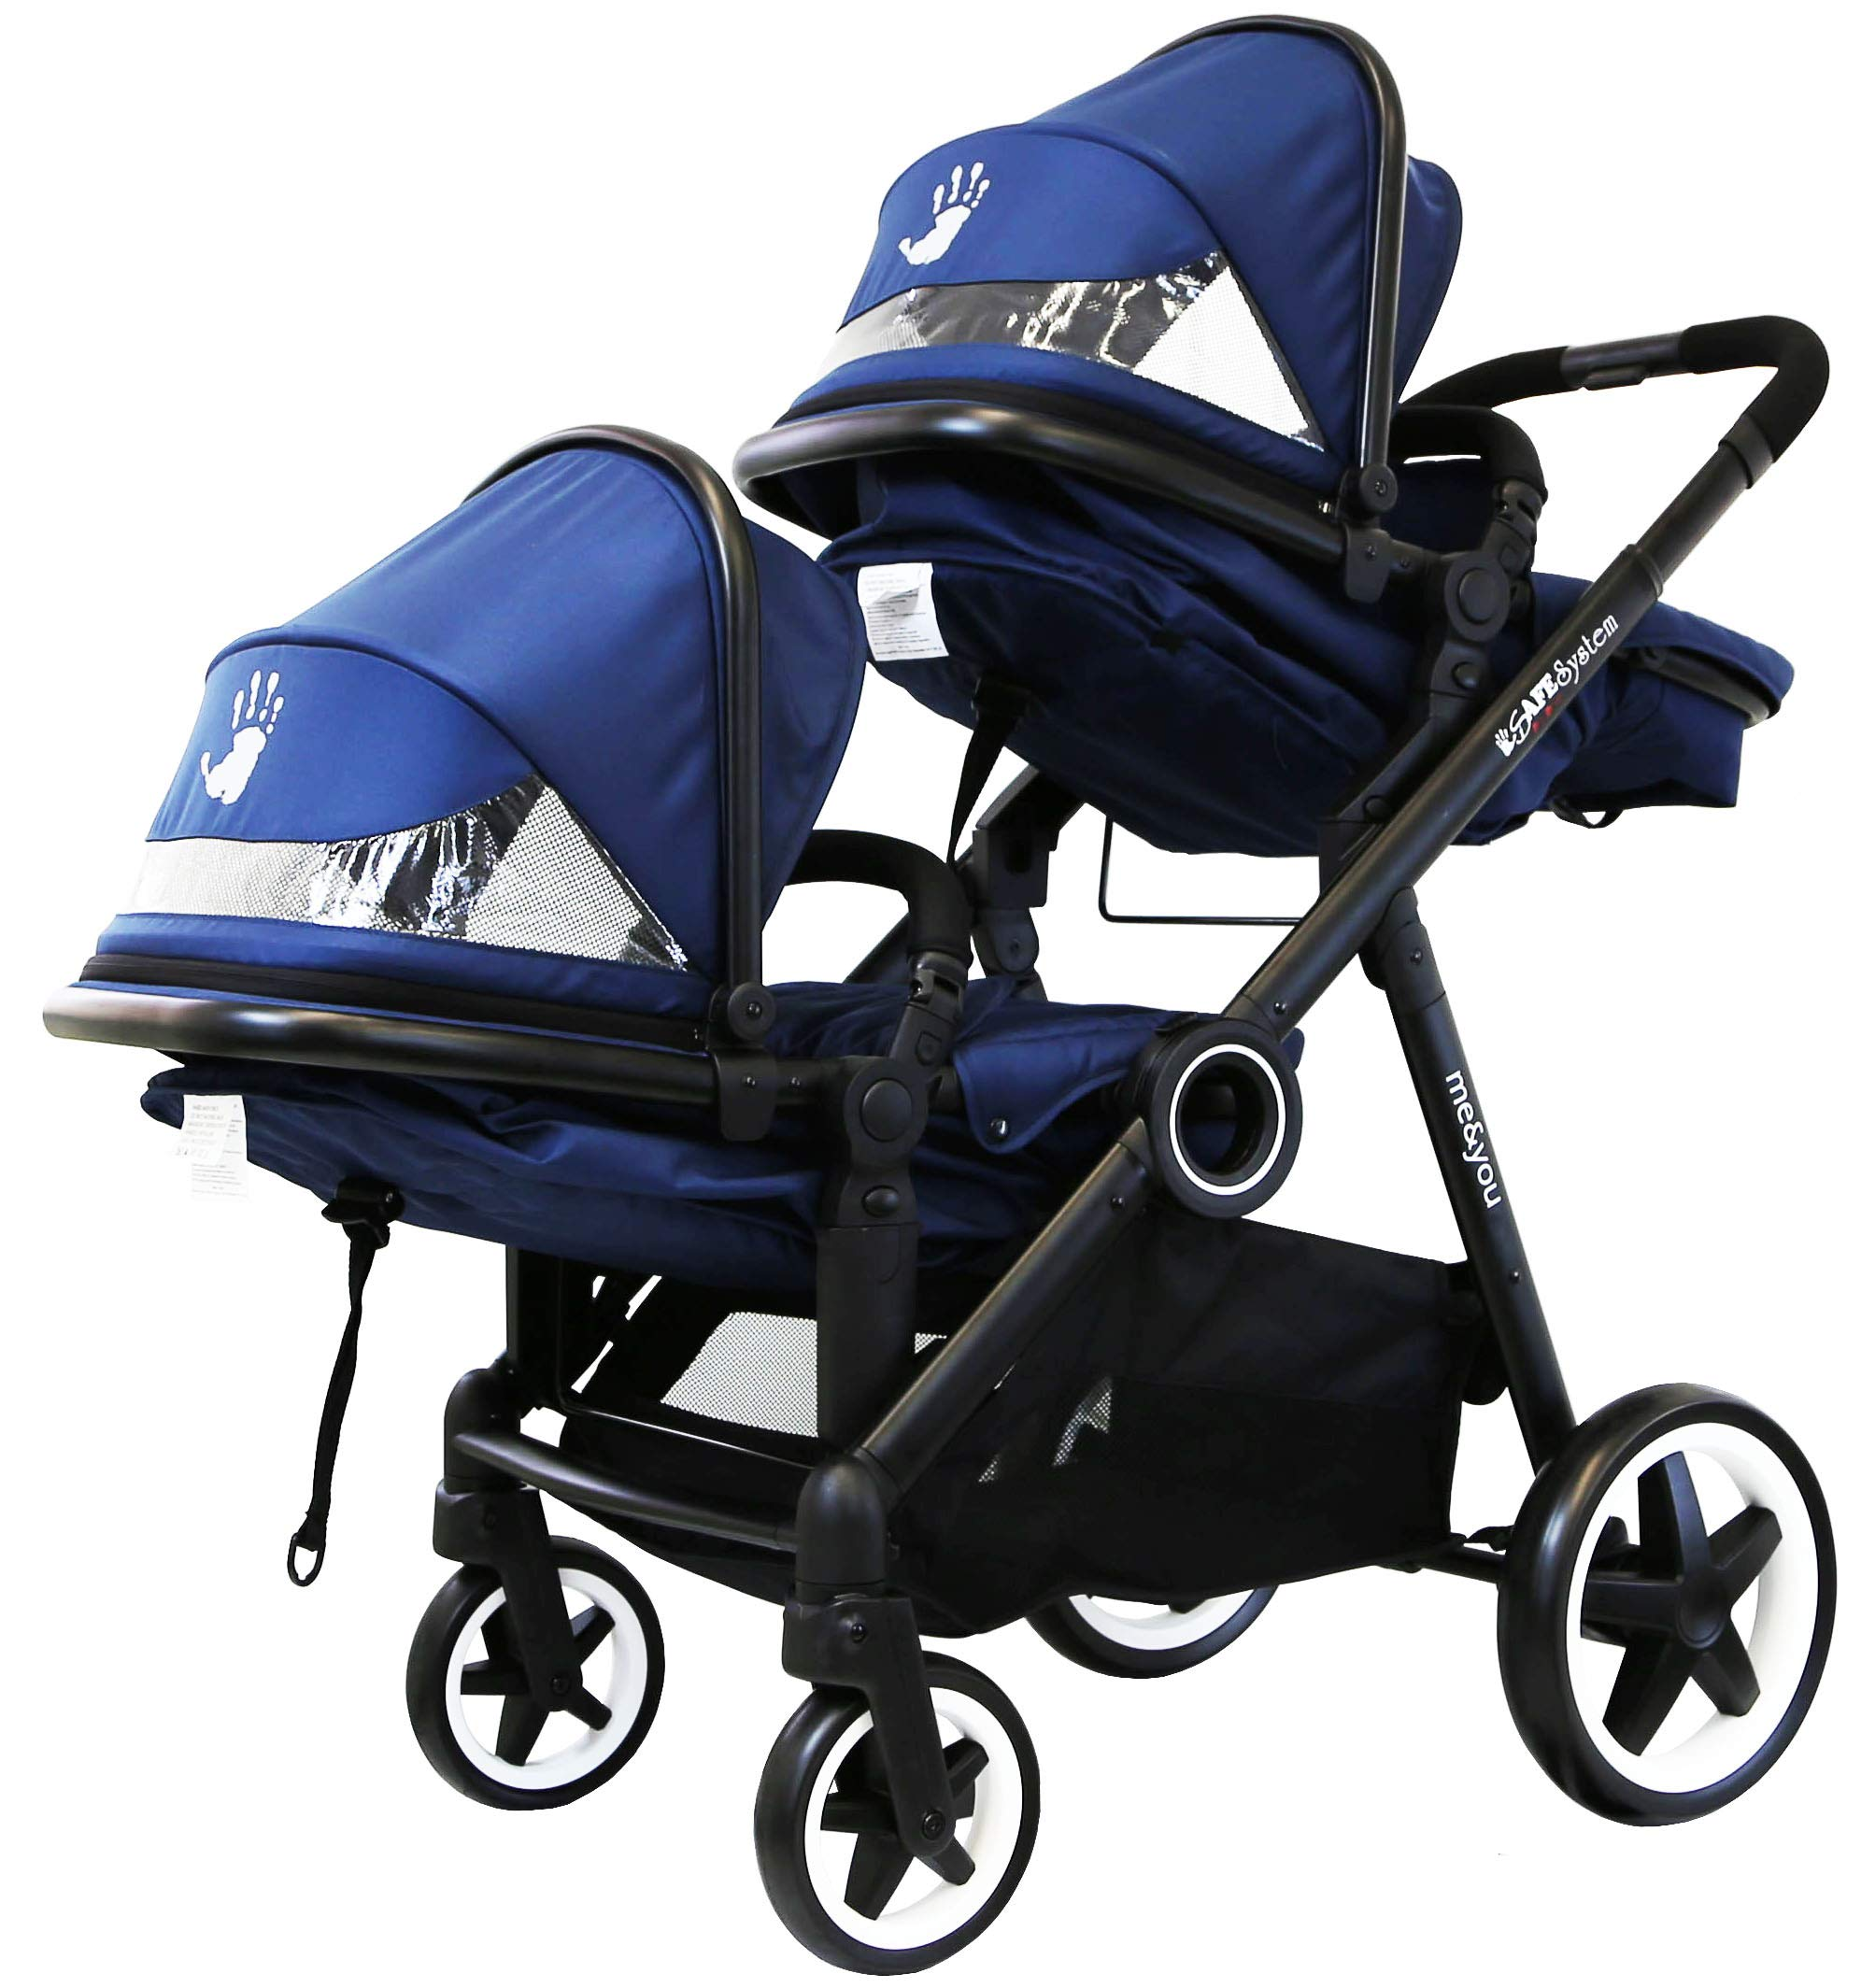 iSafe Tandem Pram me&You - 2 Tone Navy (Navy) iSafe Safety tested and certified to BS EN 1888 and BS EN 1466 for the UK & Europe Seat Units Carrycot Convertible All Adaptors (Built In) Extra large shopping basket 6